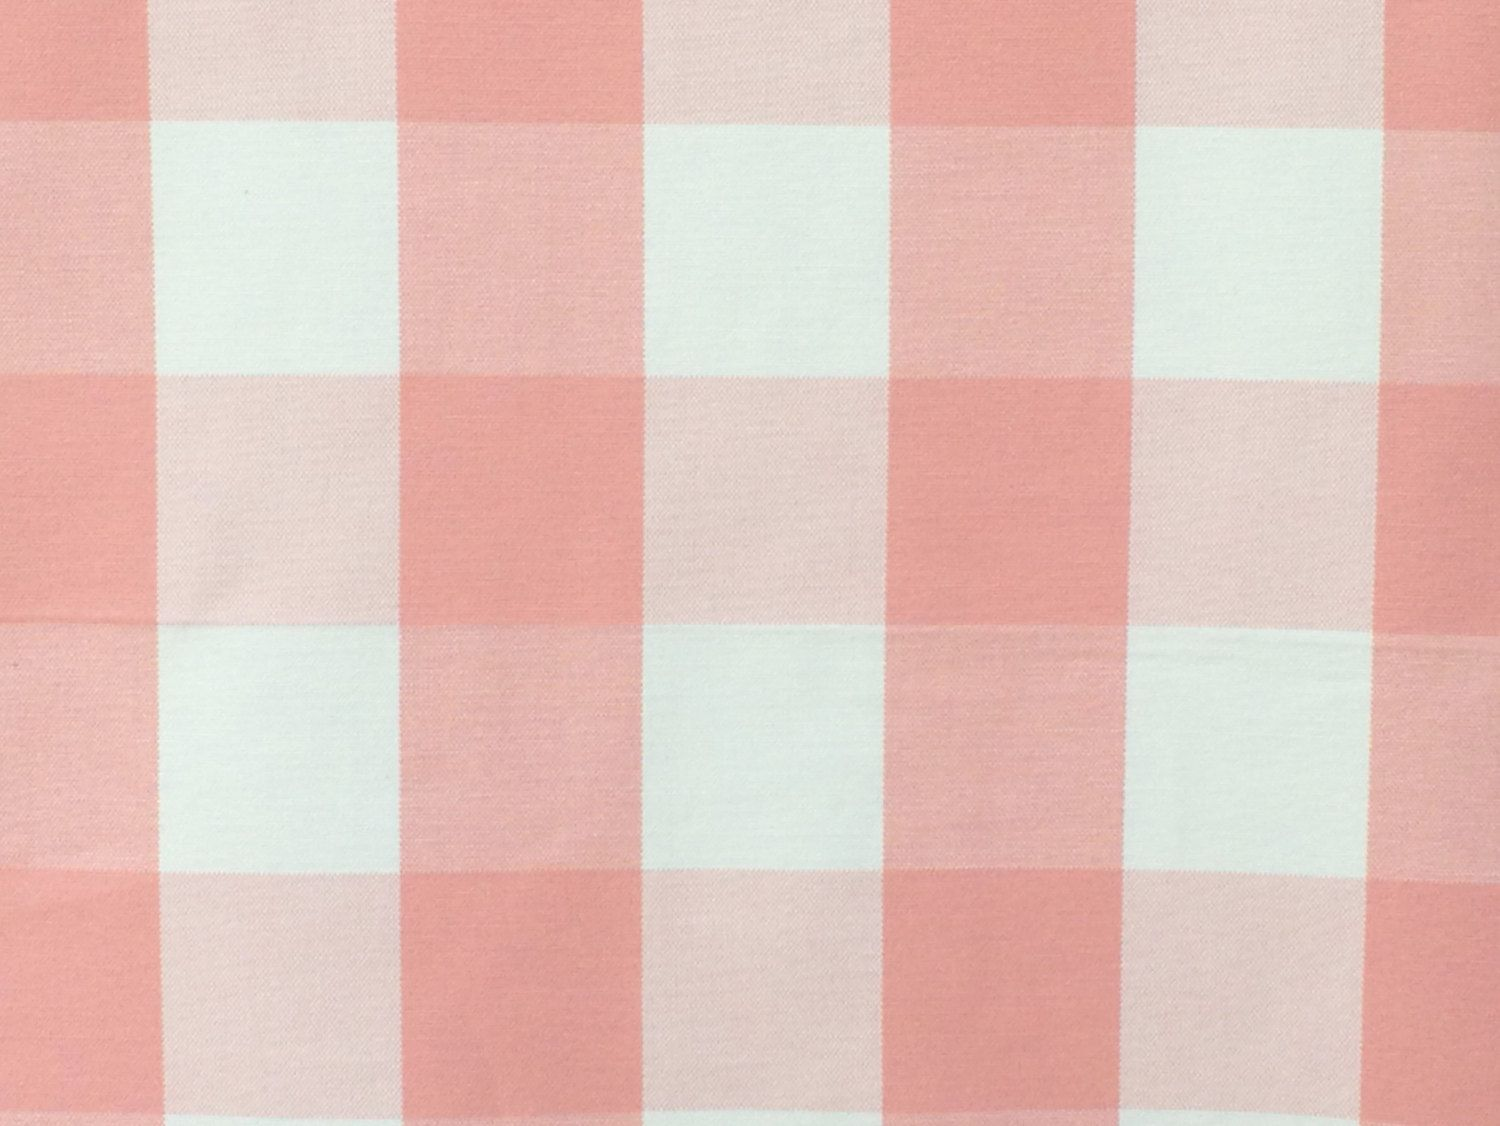 Peach And Ivory Gingham Checks Cotton Fabric By The Yard, Upholstery Fabric, Drapery Fabric, Shower Curtain Fabric, Wholesale Fabric, Cotton by FabricMart on Etsy